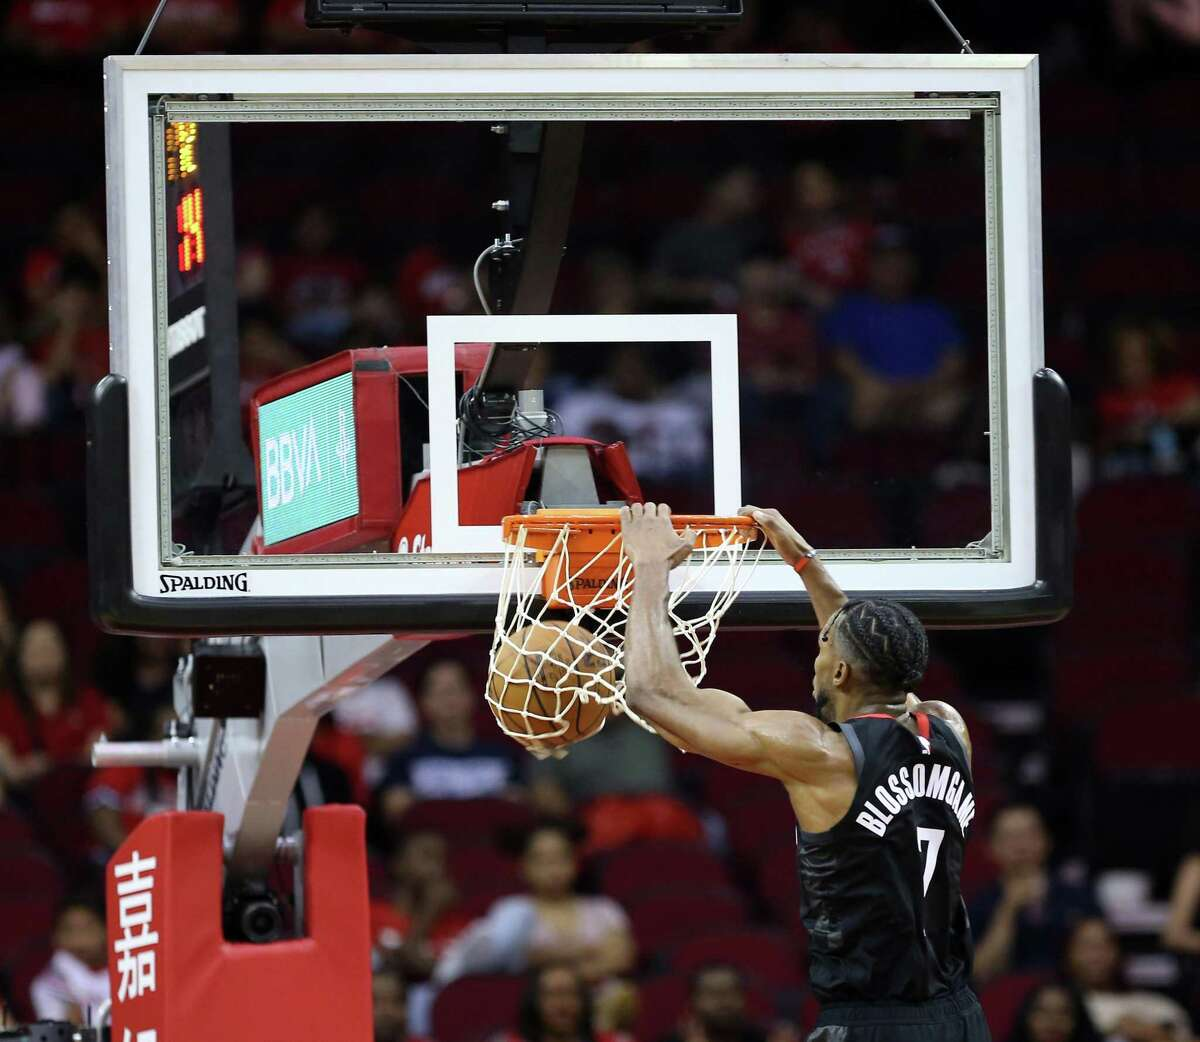 The Rockets had no trouble getting high-percentage shots Monday night, including a fourth-quarter dunk by Jaron Blossomgame.